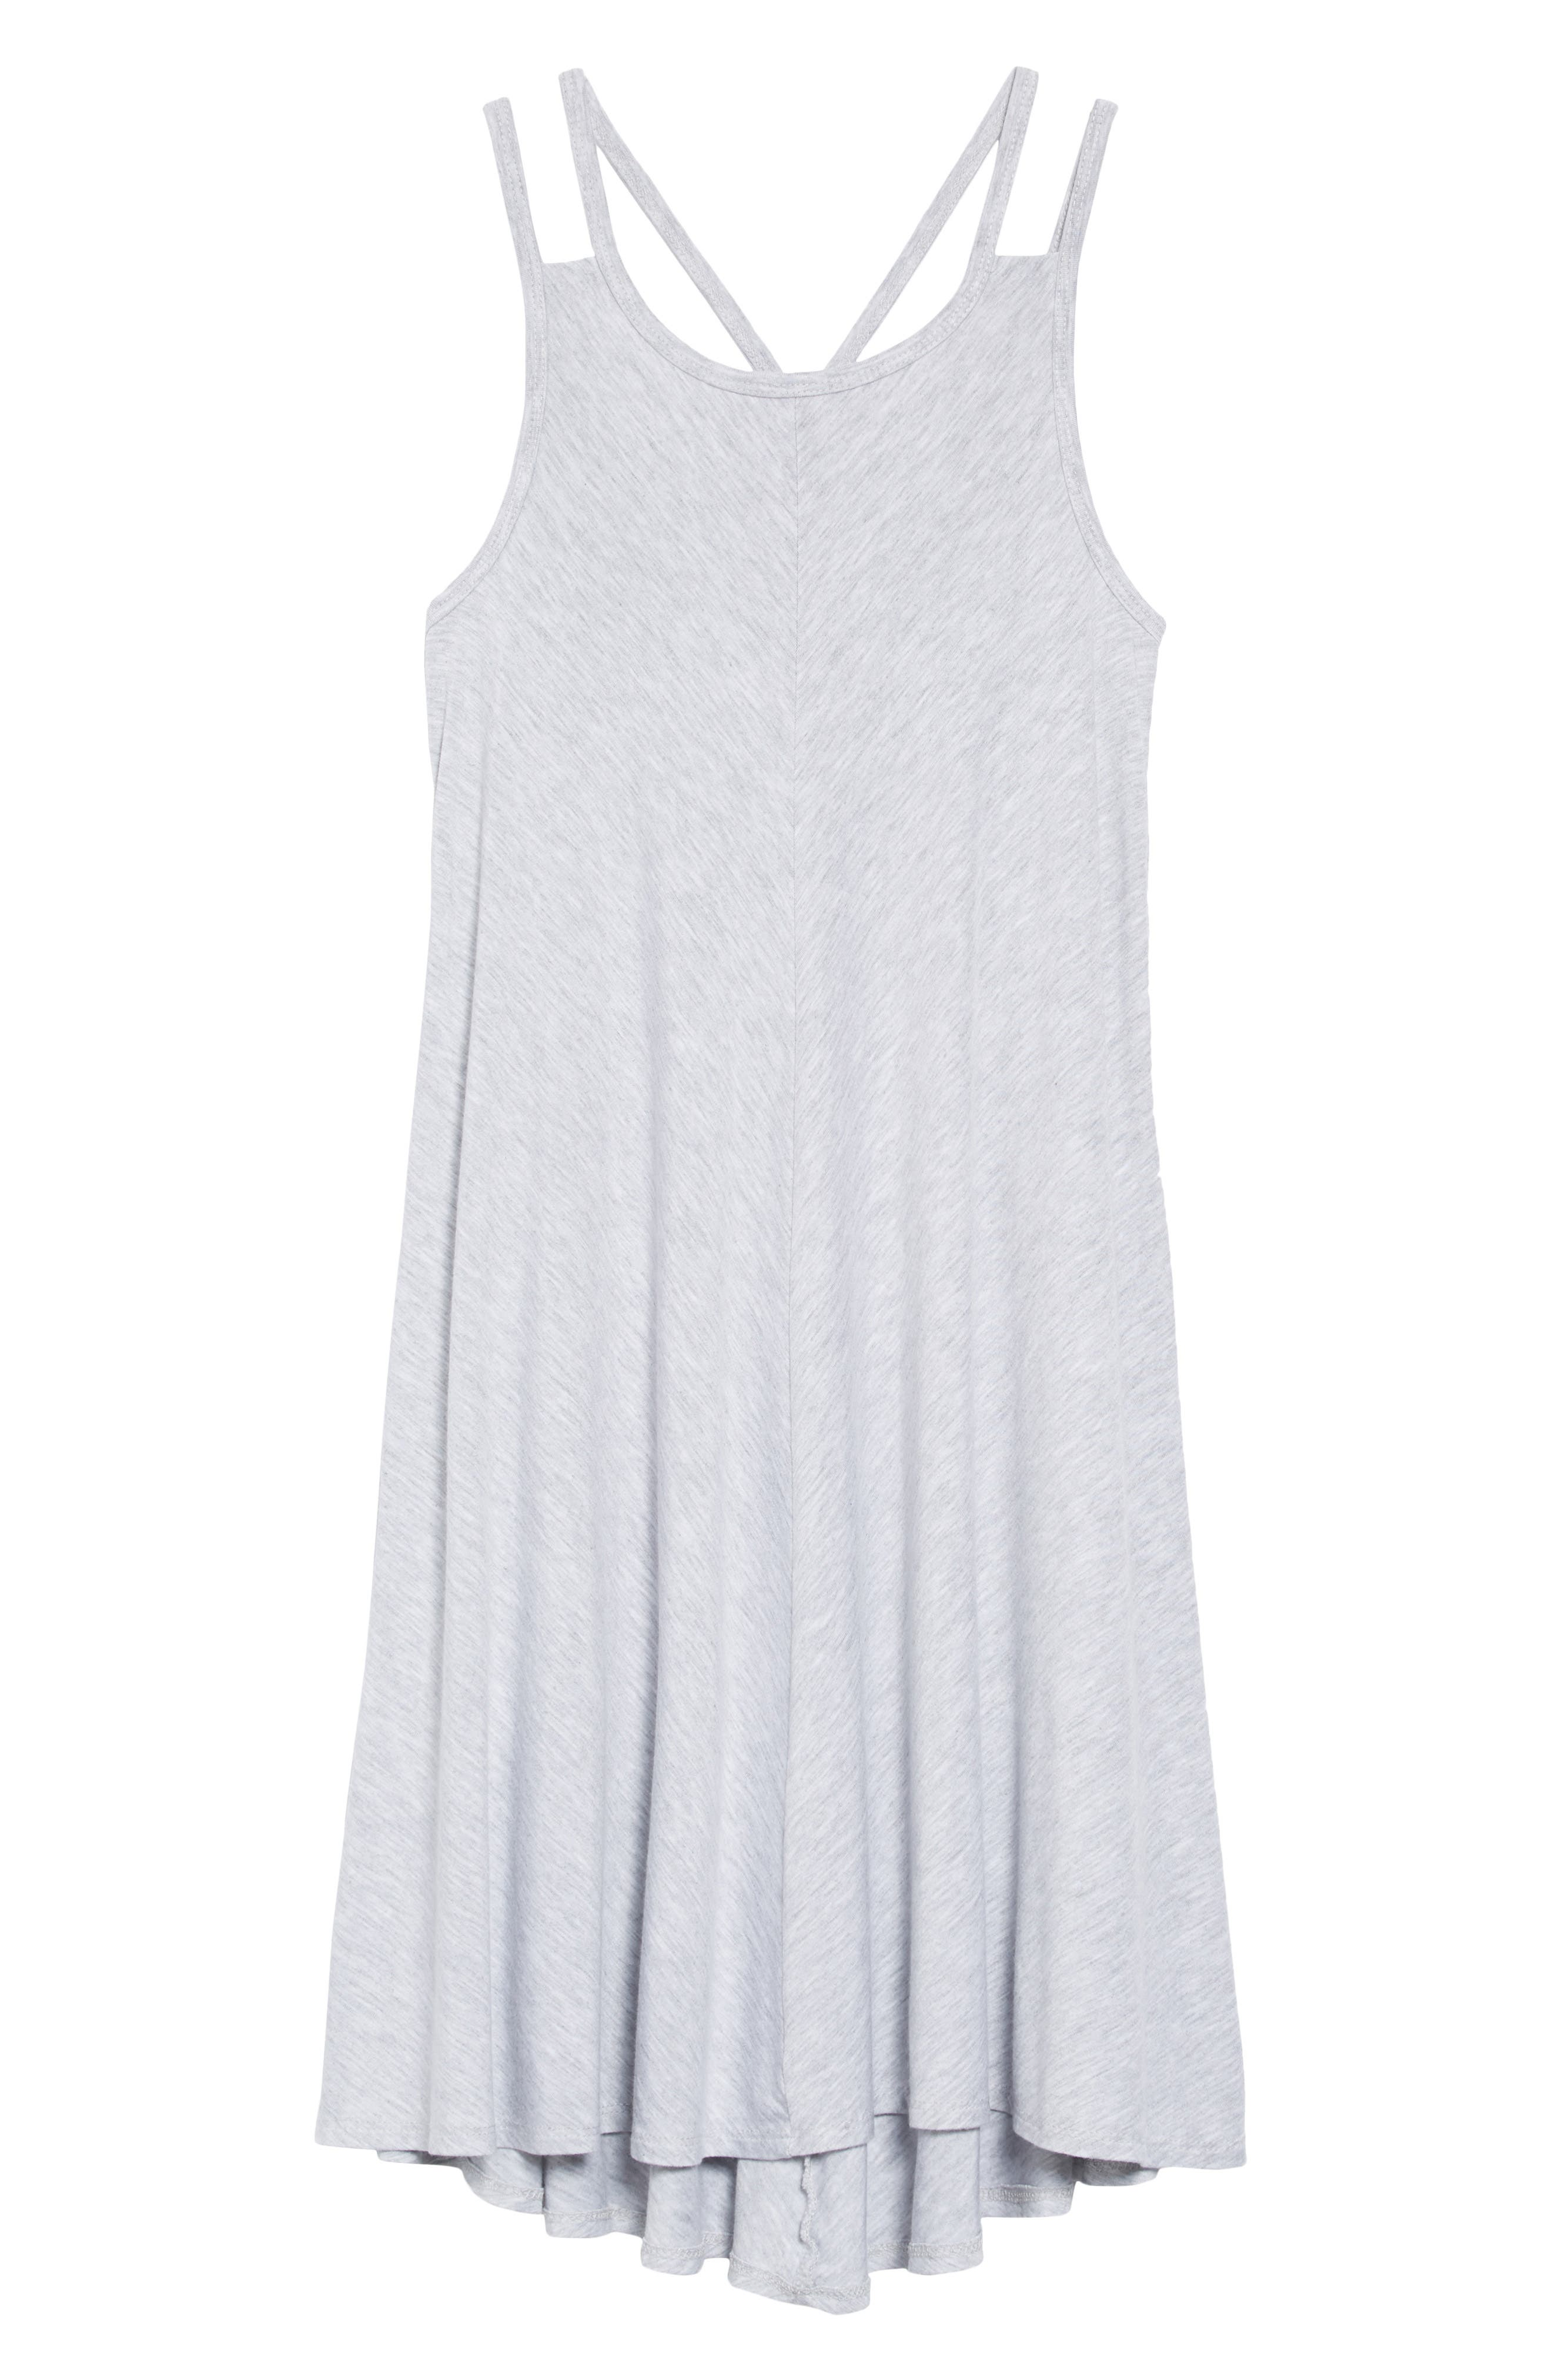 Strappy Dress,                         Main,                         color, Grey Ash Heather